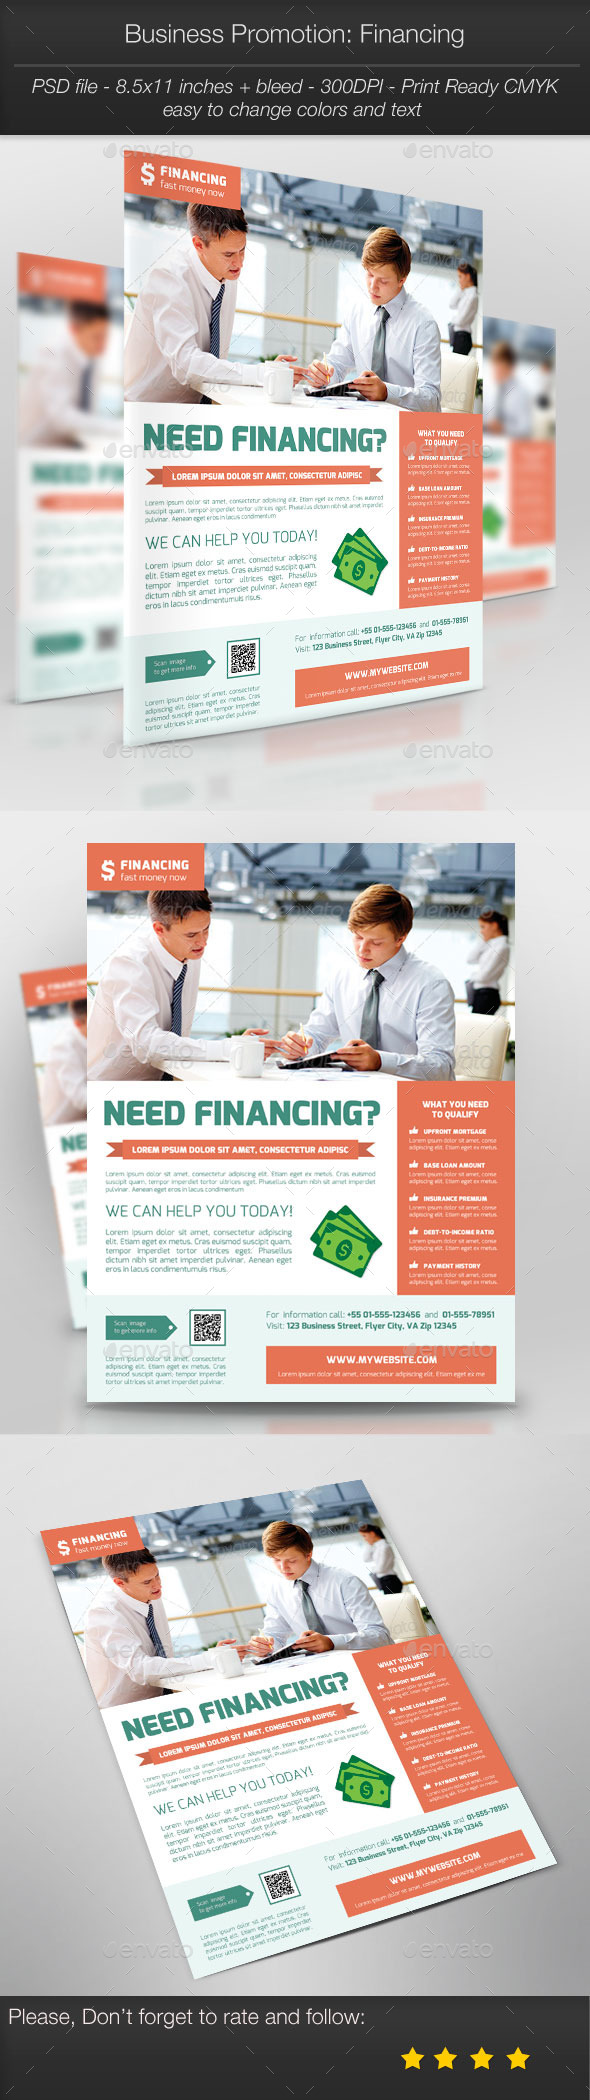 GraphicRiver Business Promotion Financing 10623126